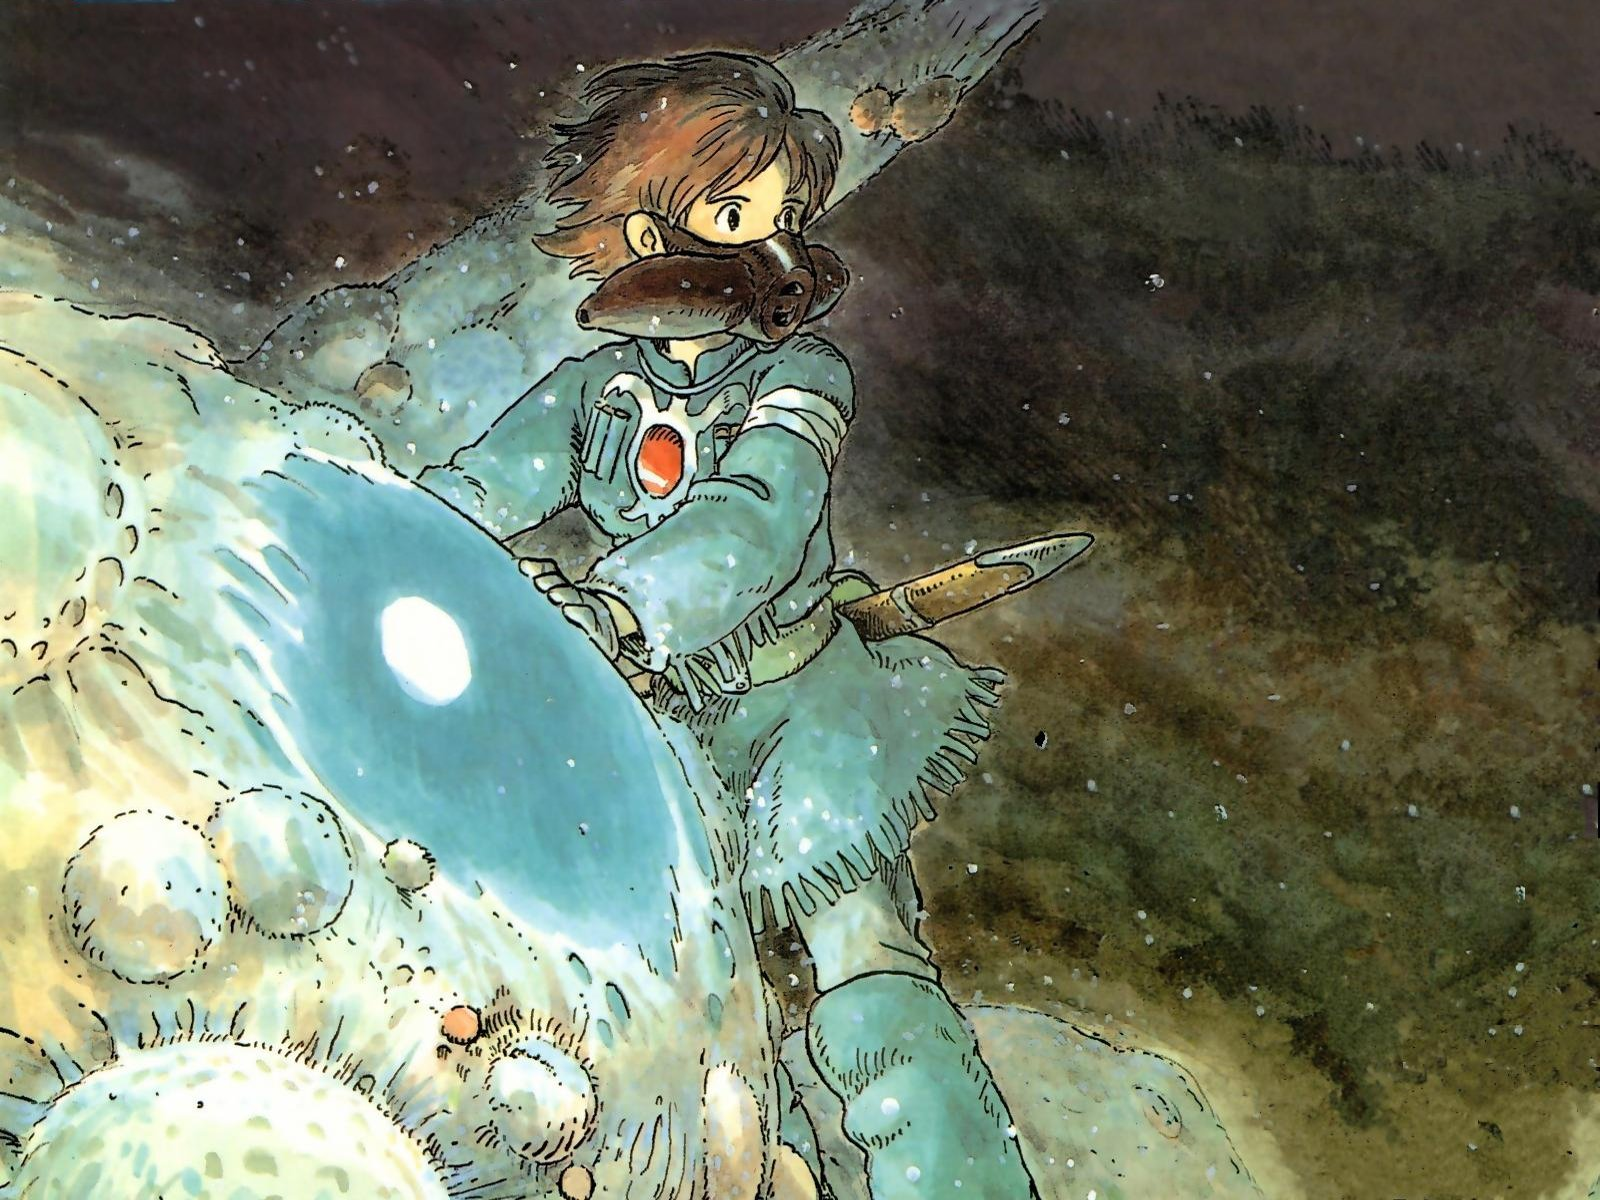 http://images6.fanpop.com/image/photos/32700000/Nausicaa-nausicaa-of-the-valley-of-the-wind-32776925-1600-1200.jpg